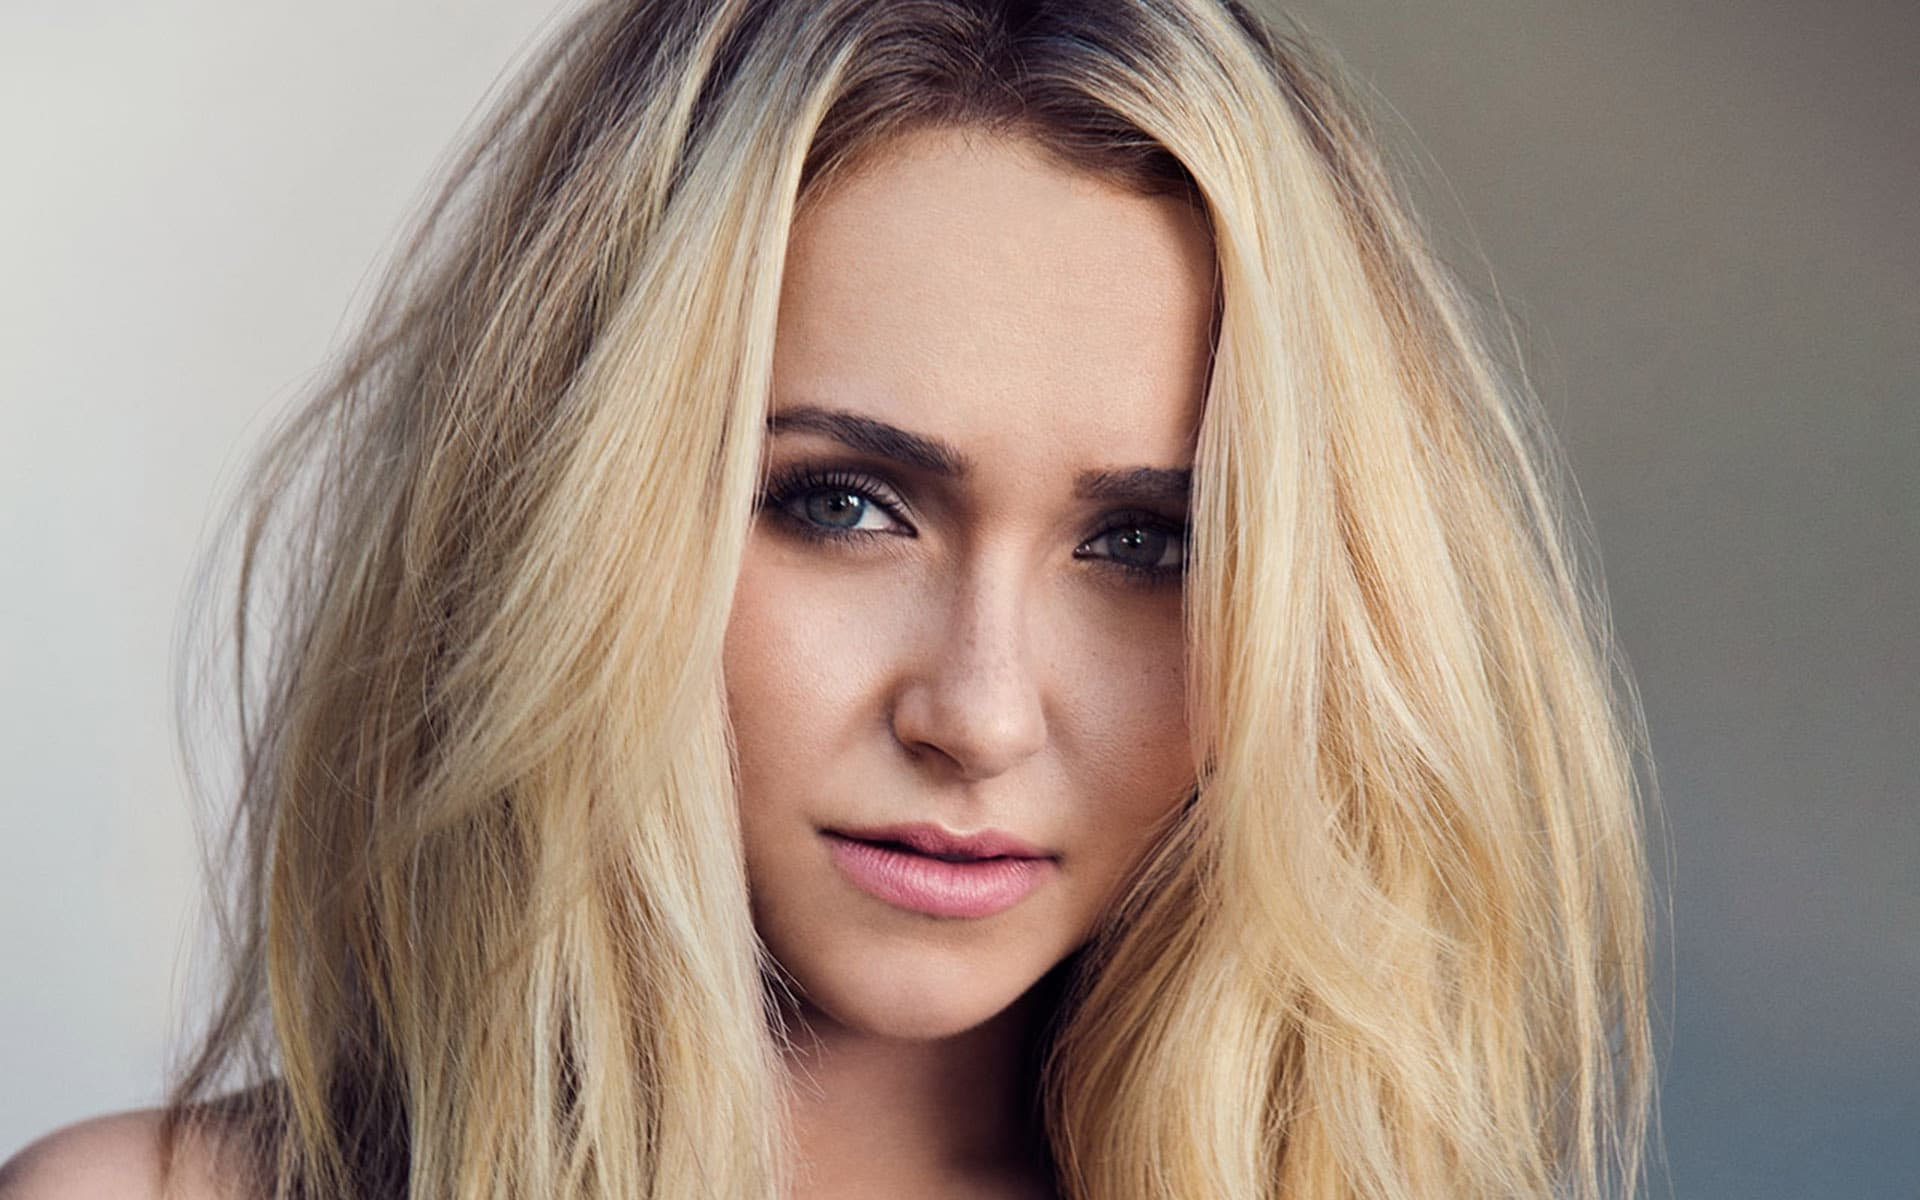 hayden panettiere wallpaper 1080x1920